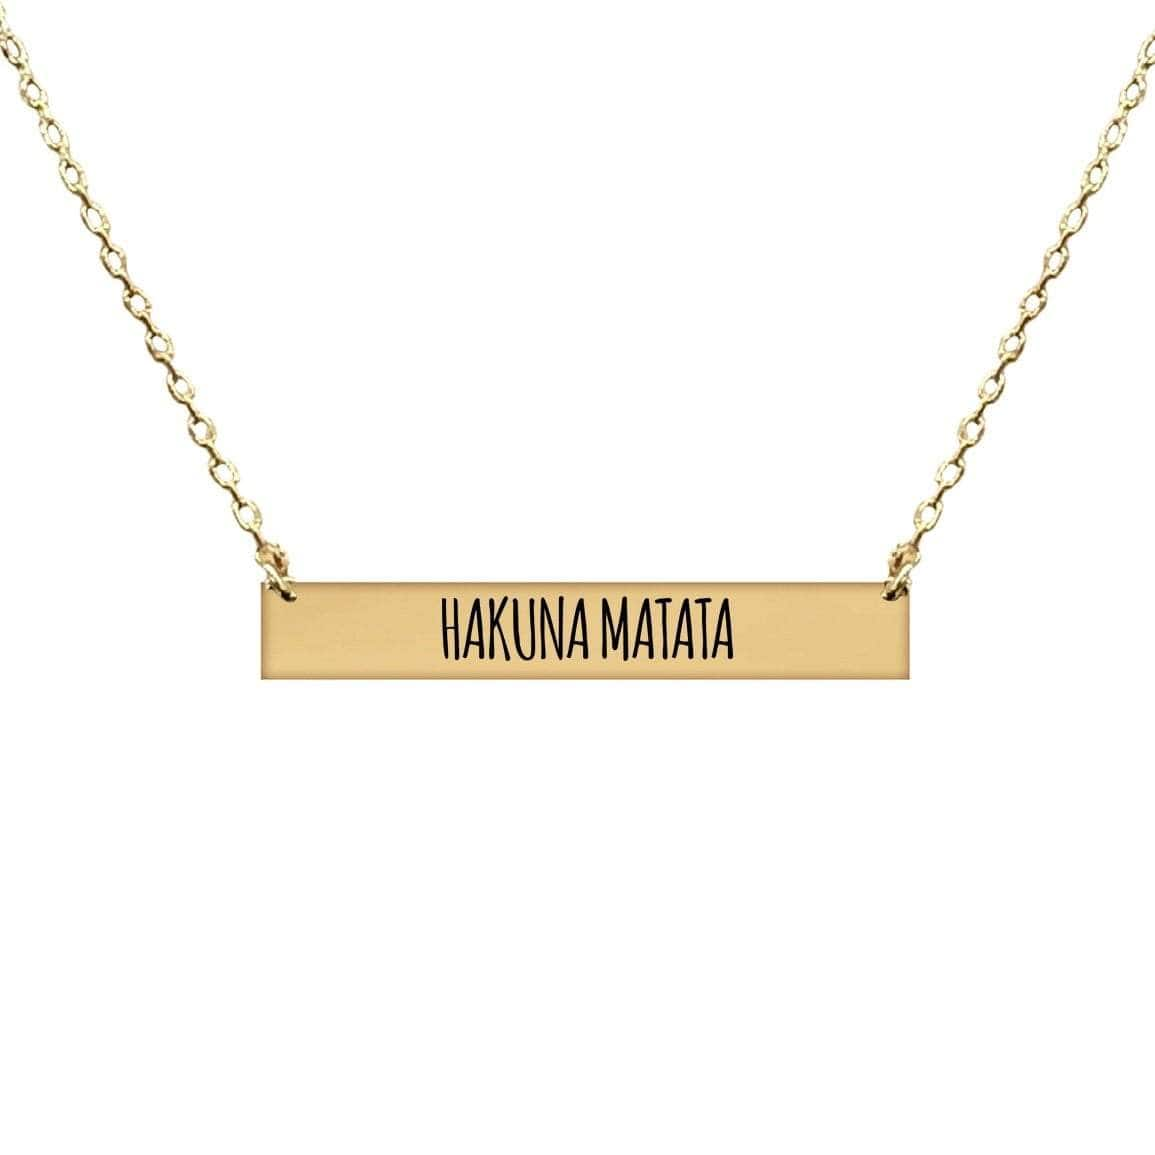 Funny Word Necklaces Inspirational Neckalces 21 21 Threads